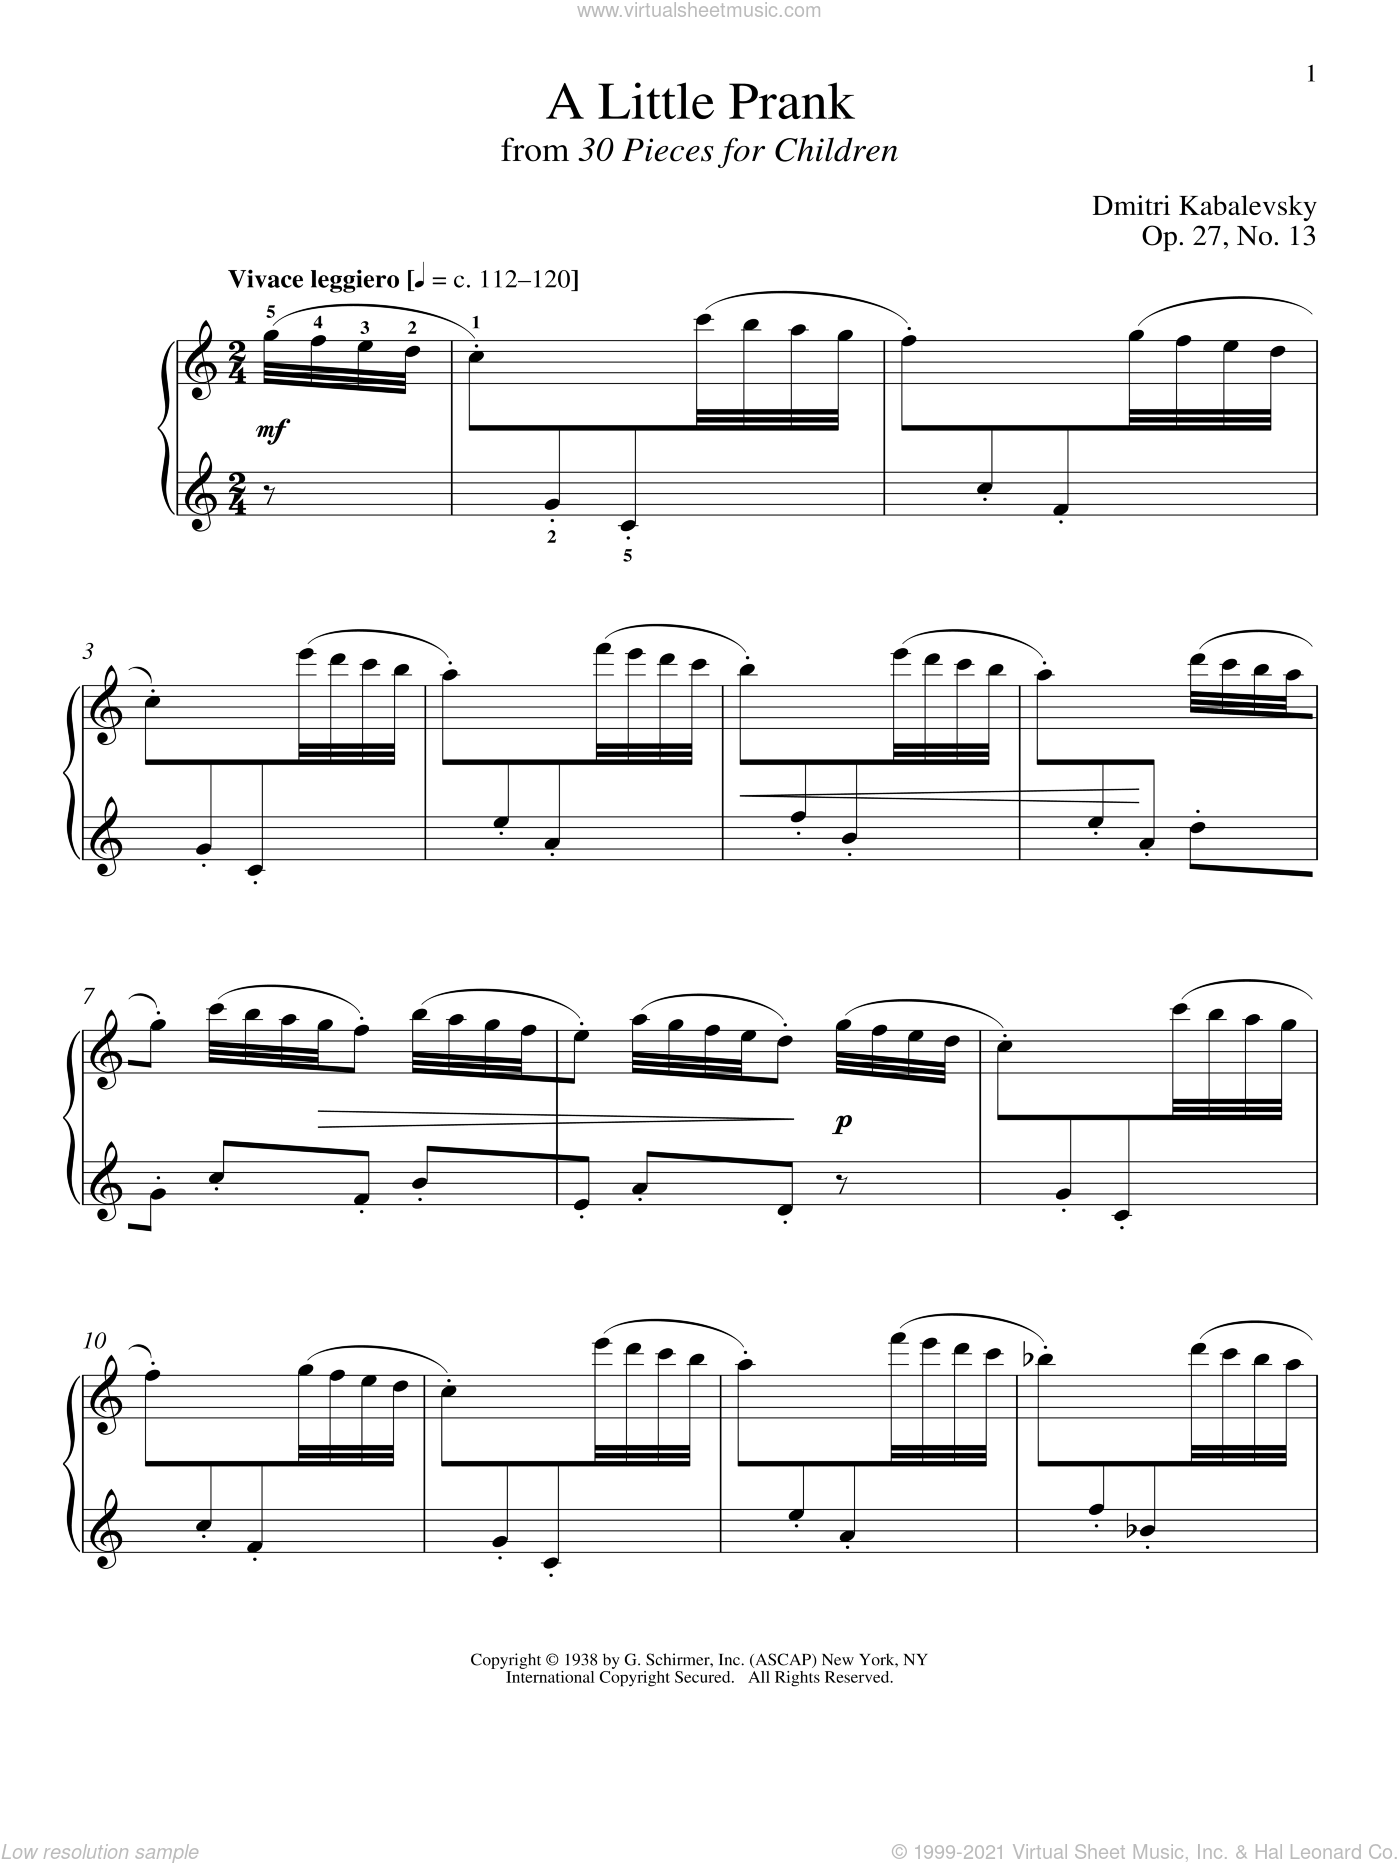 A Little Prank sheet music for piano solo by Dmitri Kabalevsky, Richard Walters, Jeffrey Biegel and Margaret Otwell, classical score, intermediate skill level